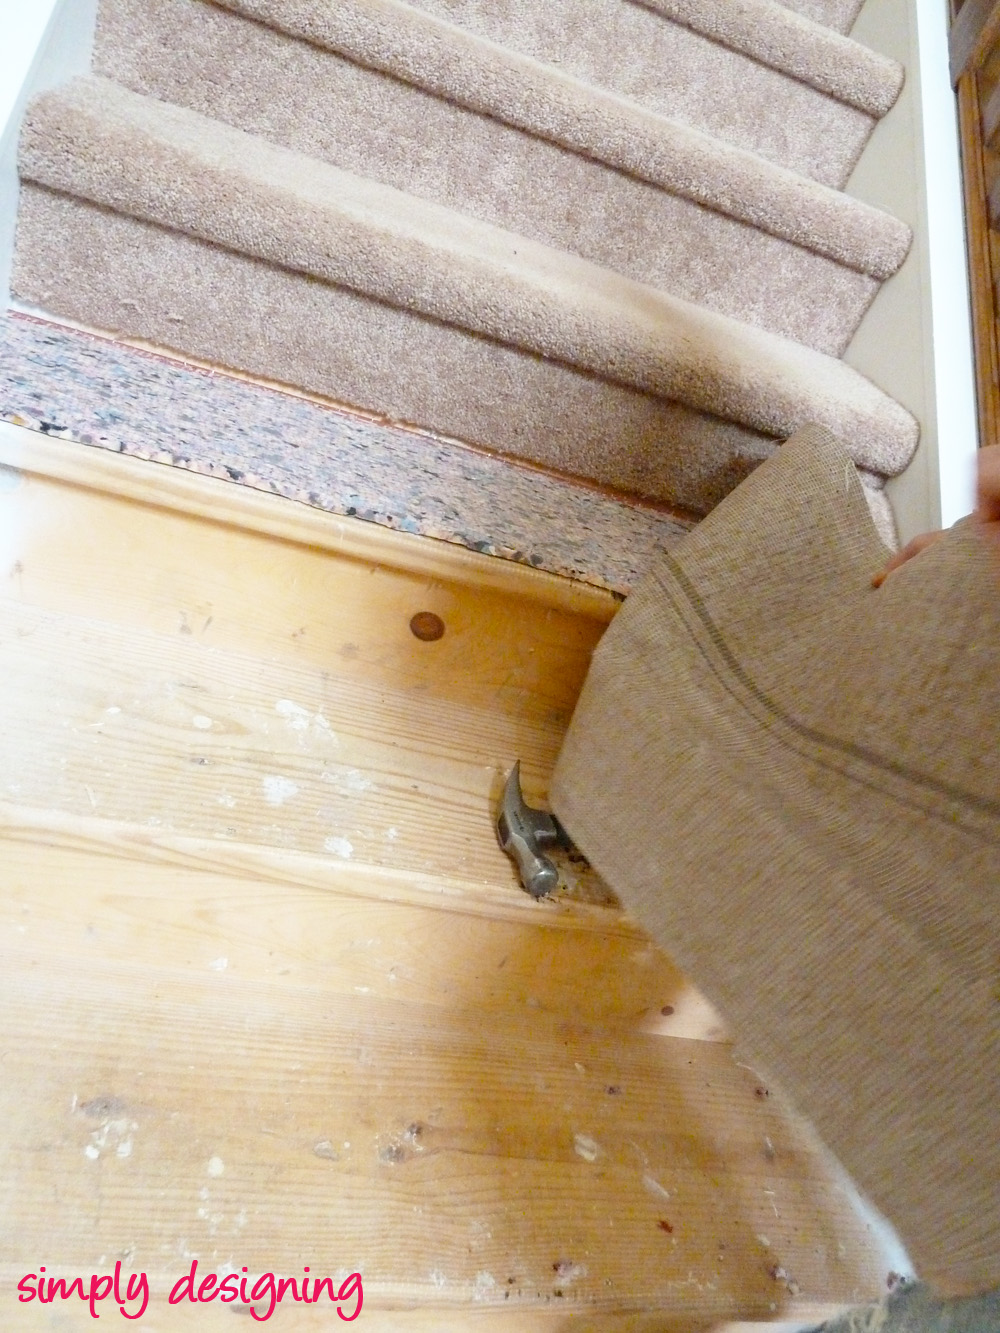 How To Redo Stairs By Ripping Up The Padding On The Stairs